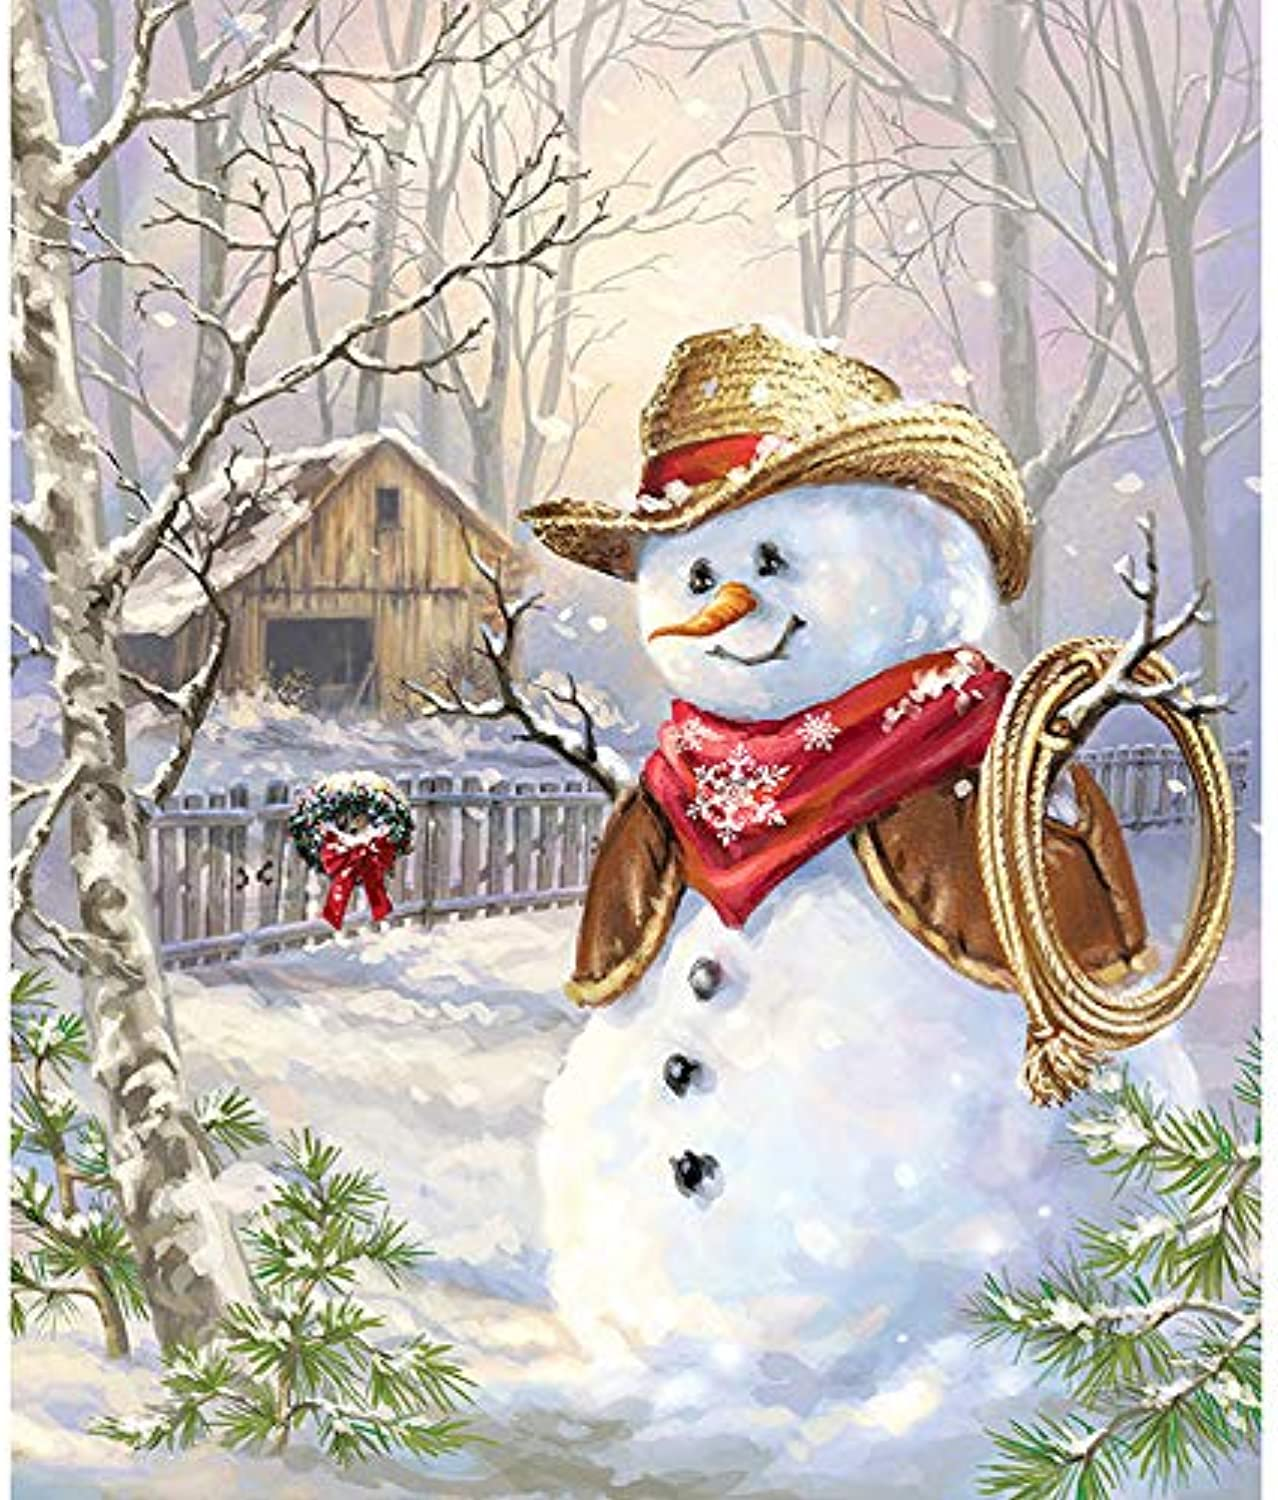 Crafts Paint Jobs By Digital Kit,Kids color By Number Kit With Tag, Xmas Snowman,16''X20''